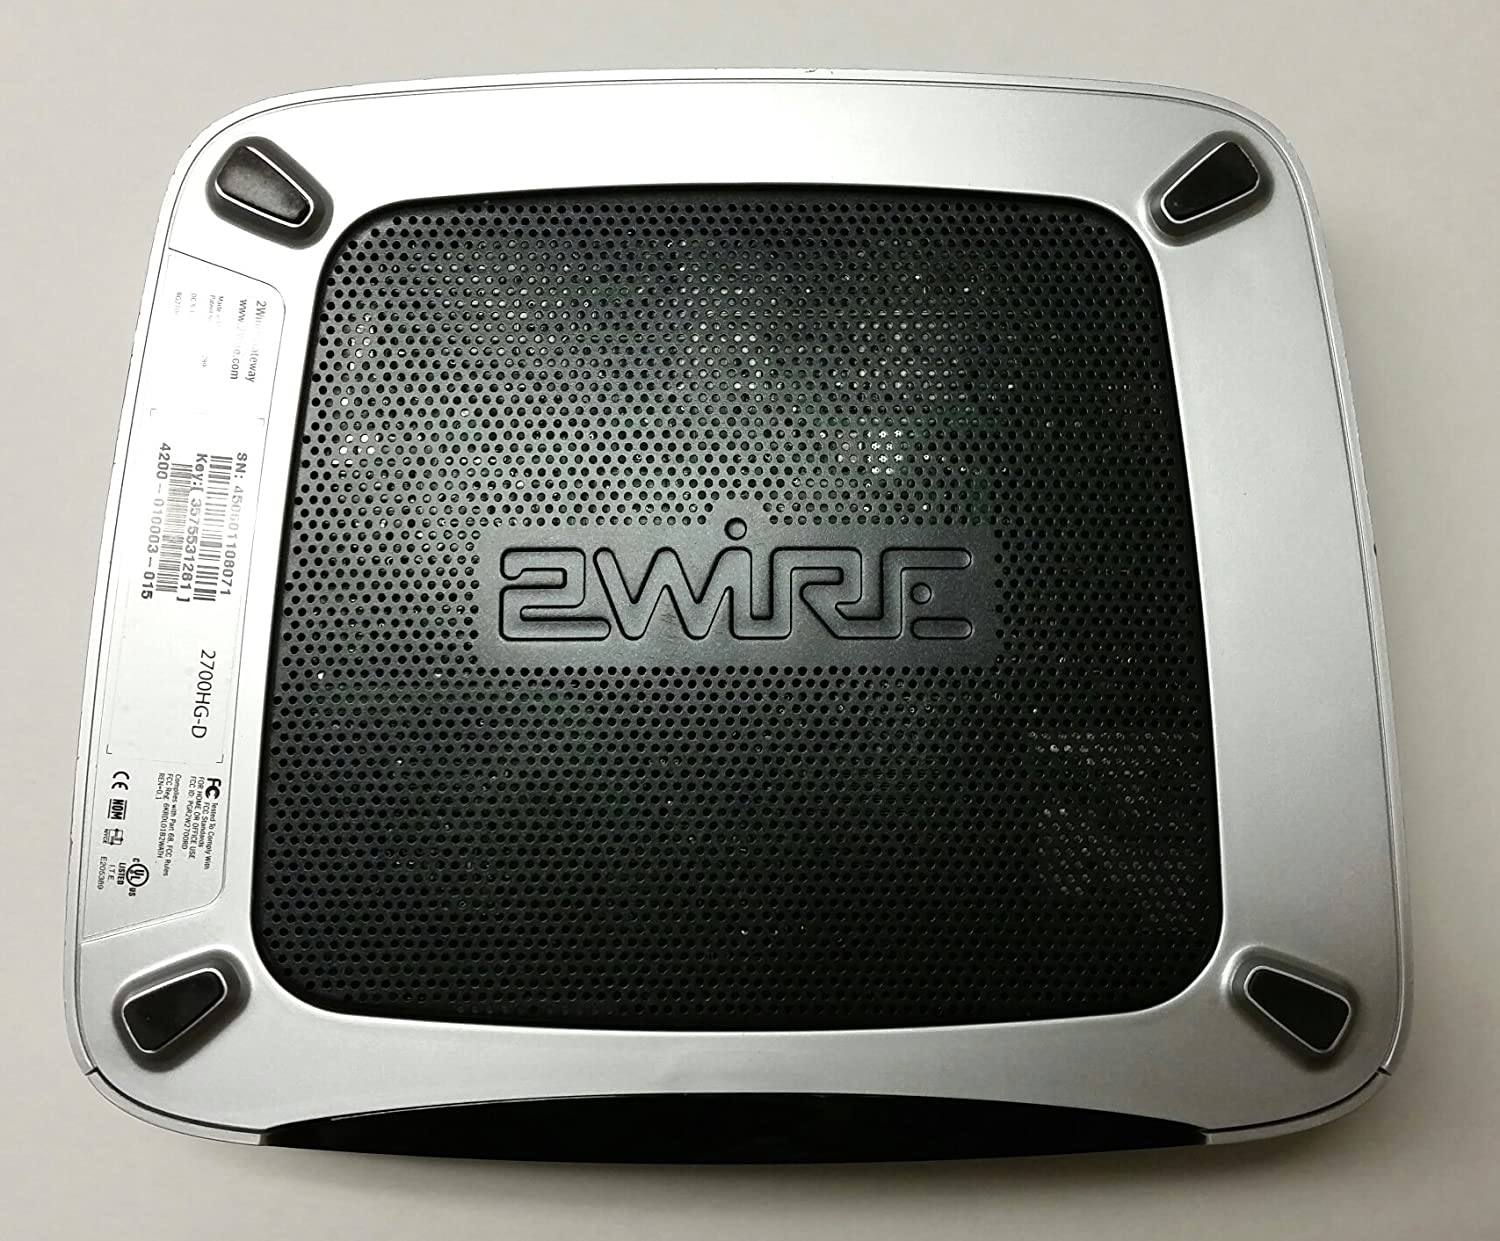 2wire Modem 2700hg D - WIRE Center •